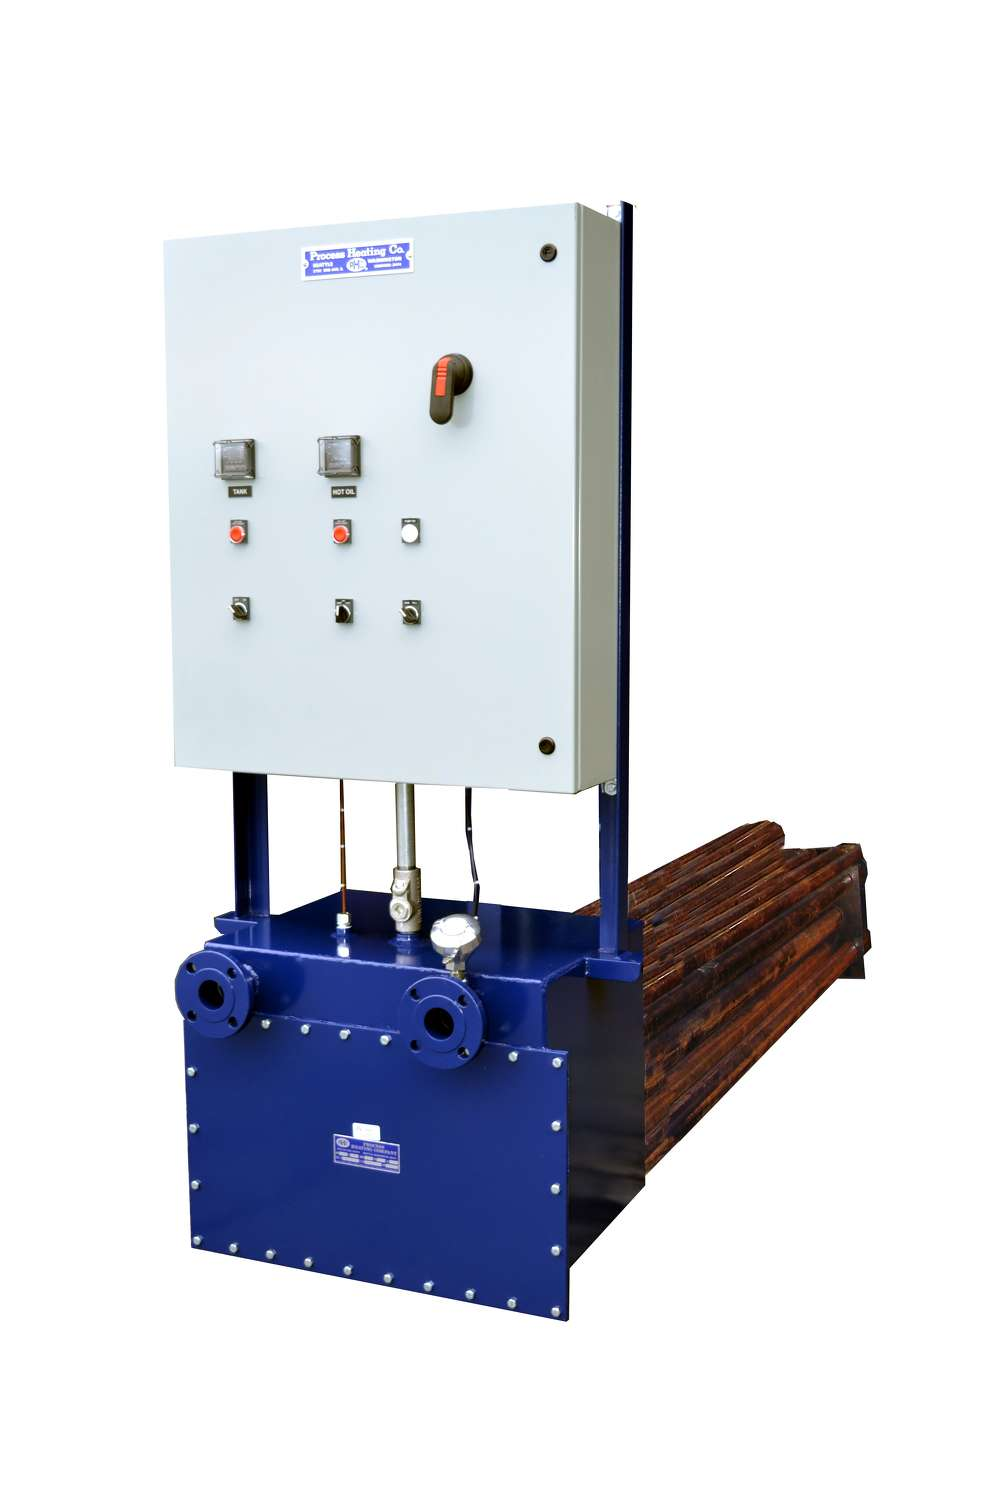 The All-In-One Heater Kit from Seattle-based Process Heating Company is a complete system that can provide direct heat to the asphalt tank, while also supplying hot oil for the plant.